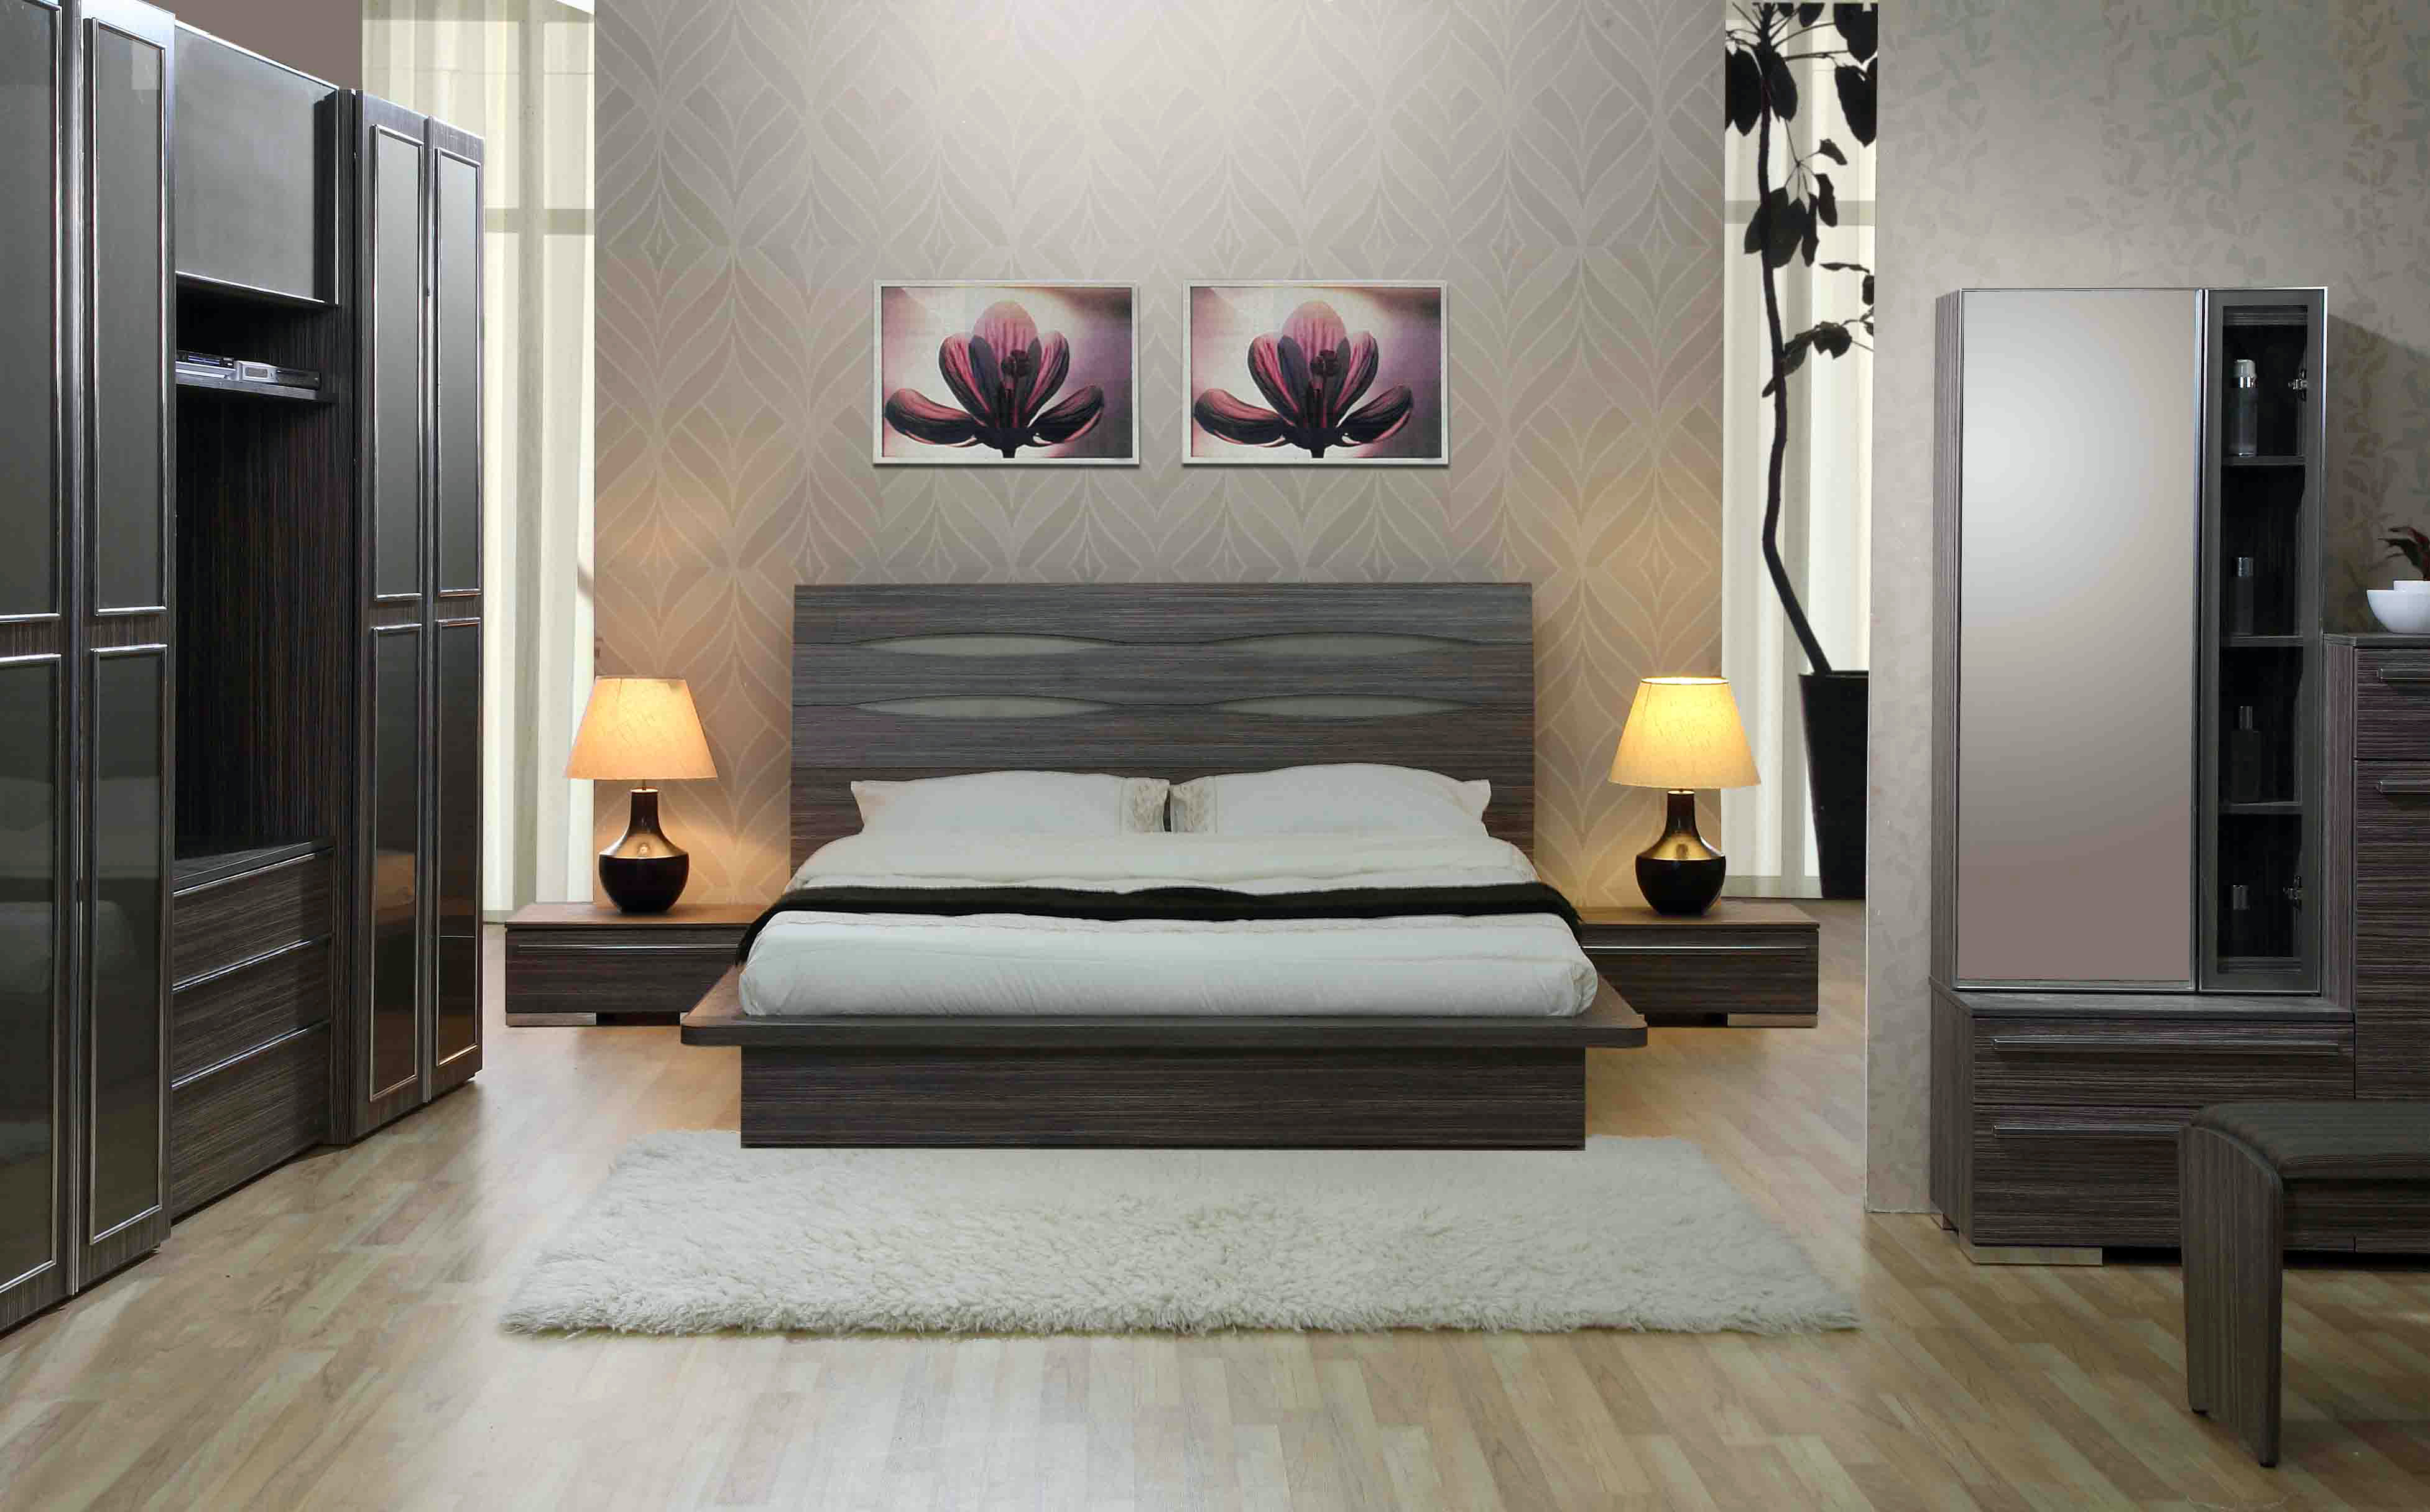 25 Best Bedroom Designs Ideas - The WoW Style on Bedroom Decor  id=42700